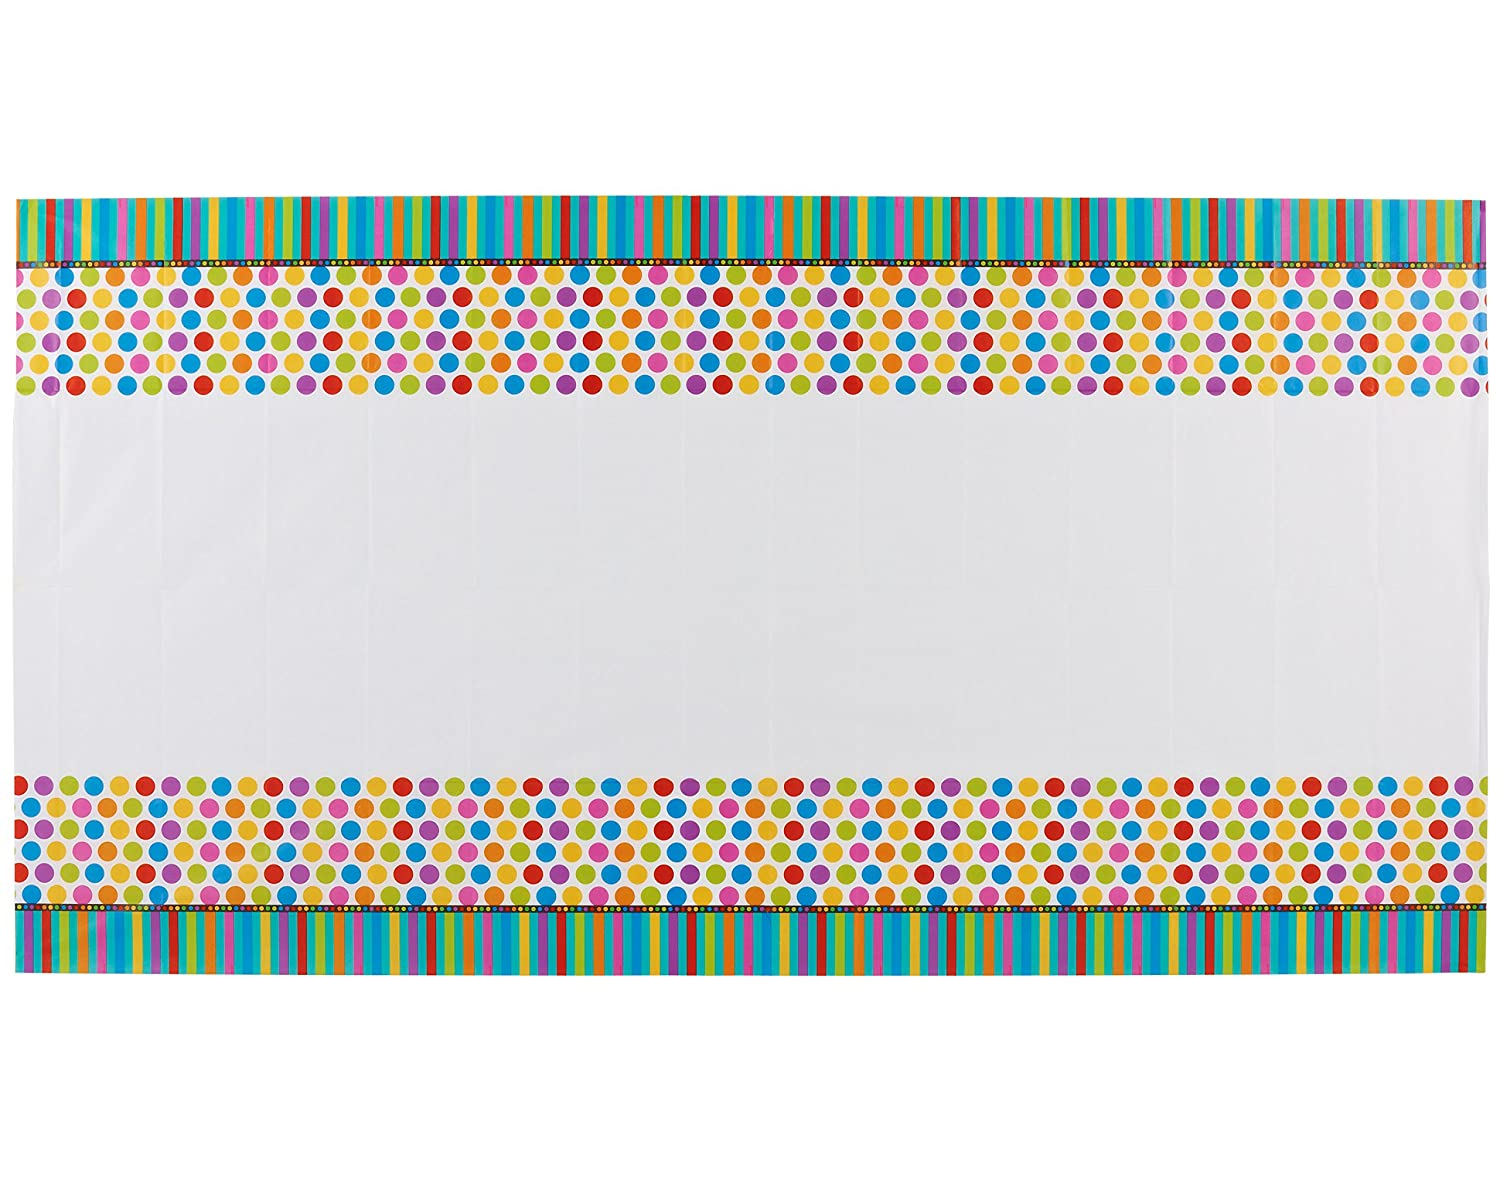 American Greetings 8 Count Party Supplies Dots and Stripes 10 Square Plate Teal Amscan 048419949015